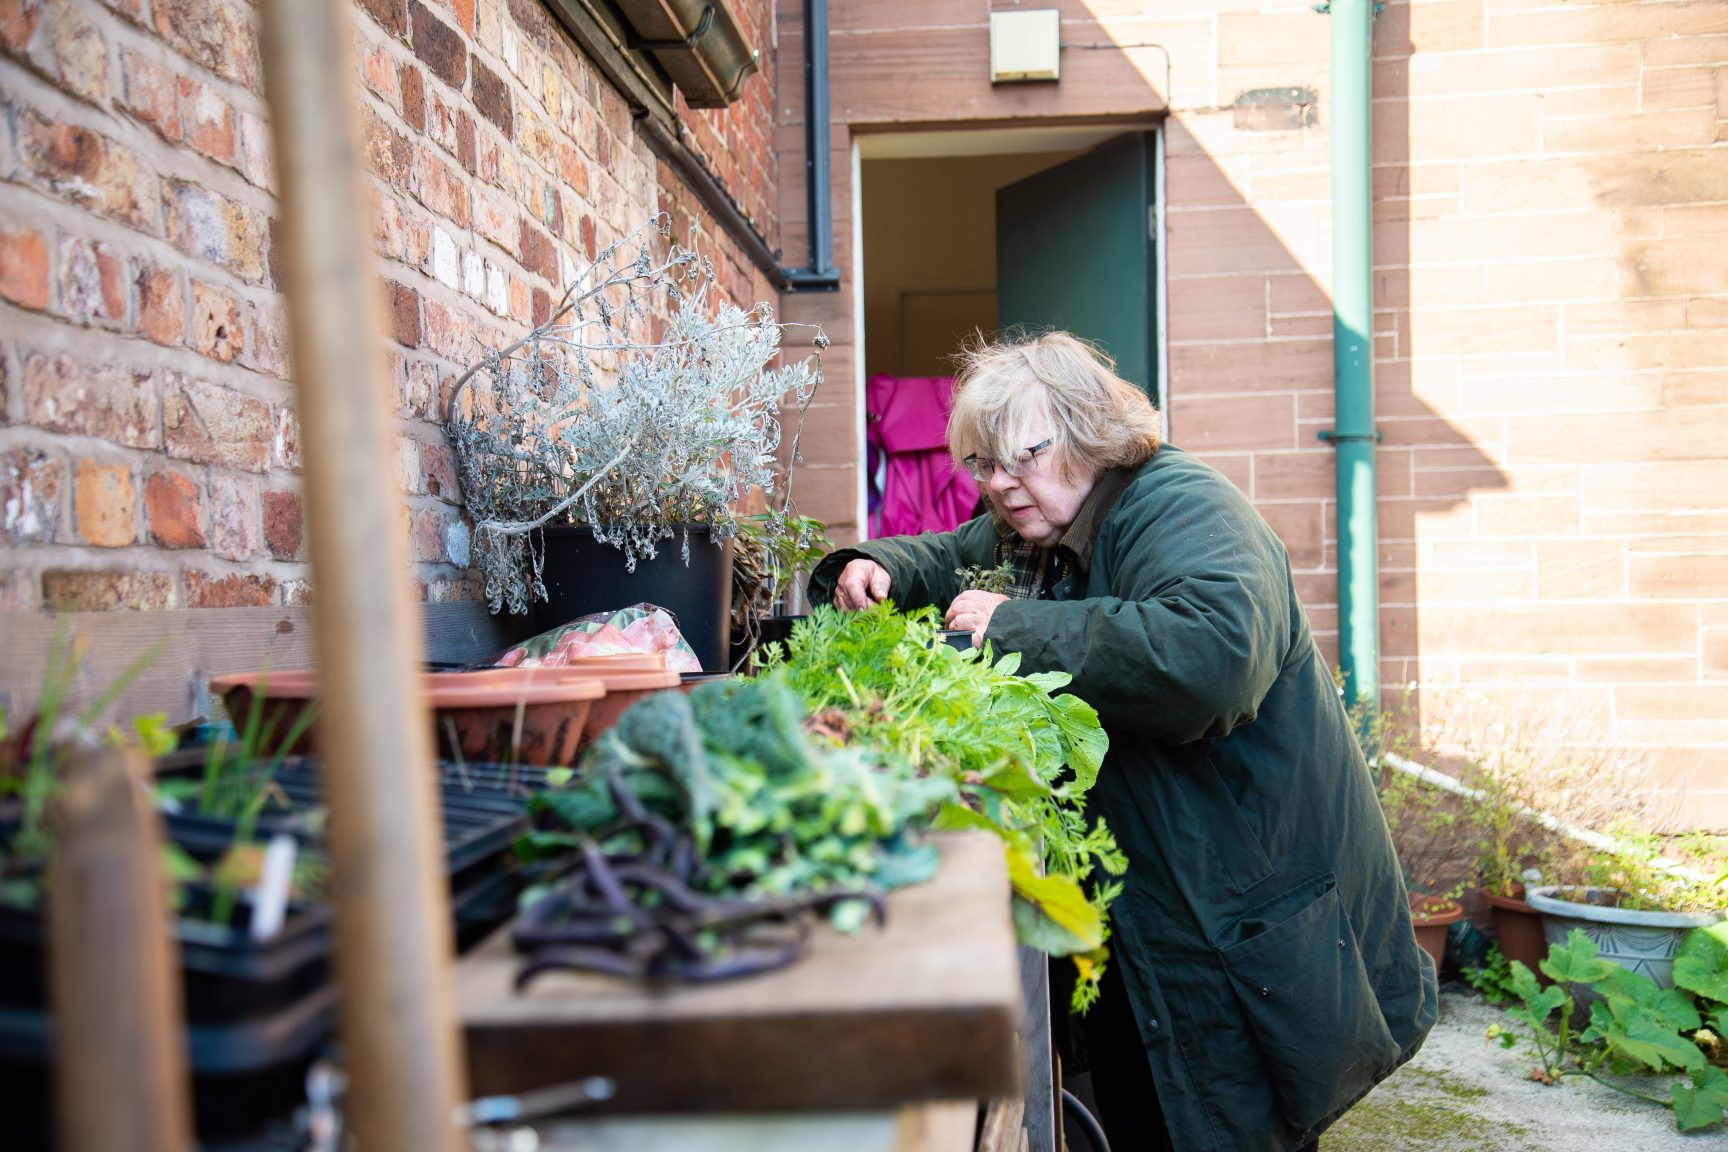 Older person looking through plants and vegetables